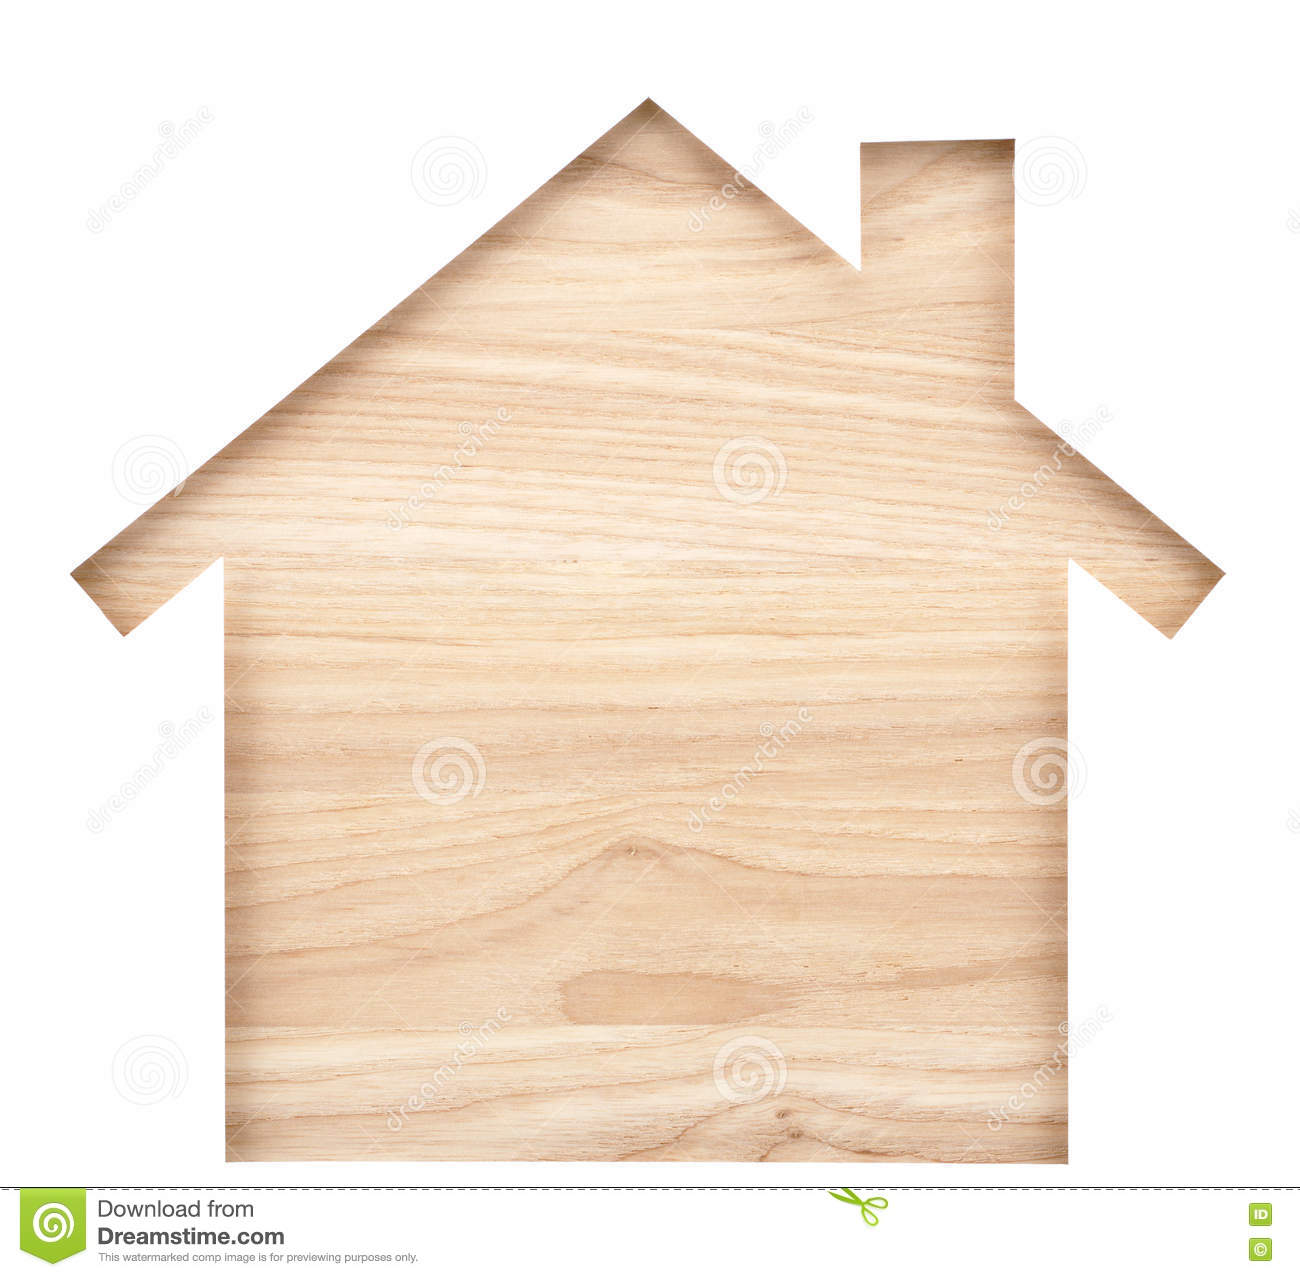 House shaped paper cutout on natural wood lumber.